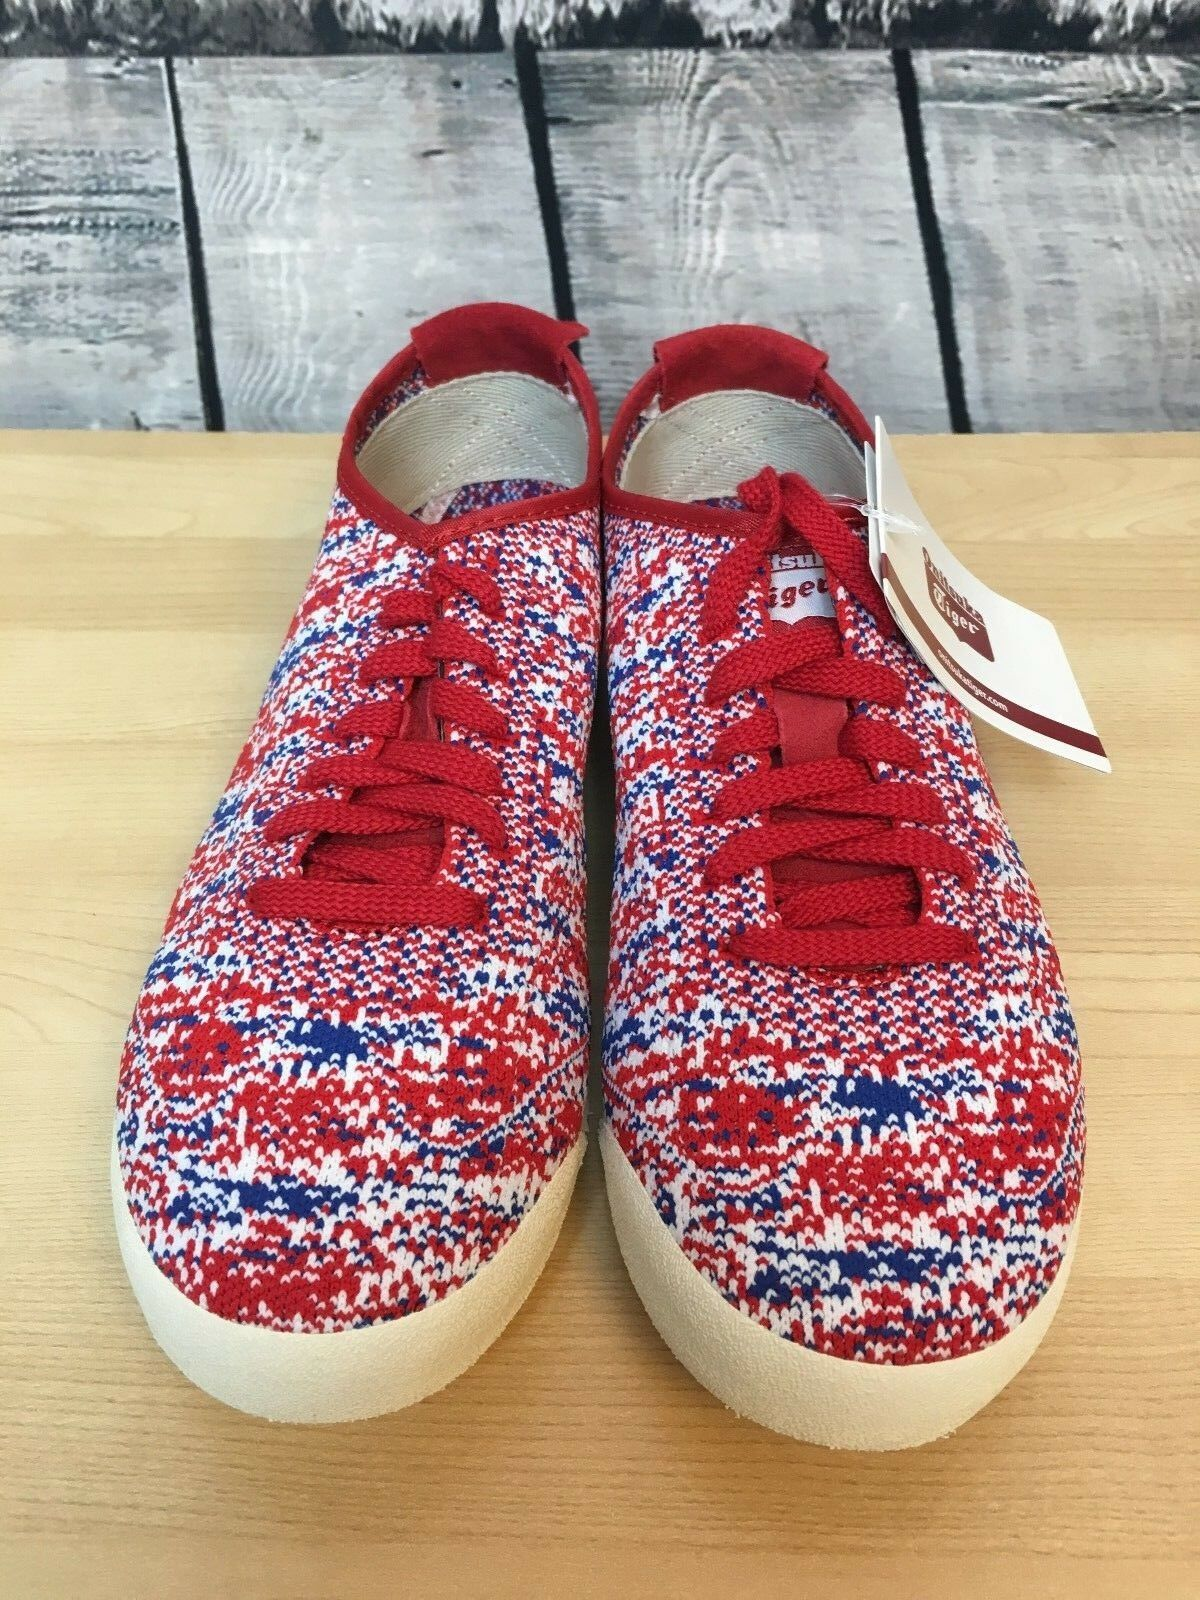 ASICS New Onitsuka Tiger MEXICO 66 Knit Red Unisex Japanese Fits Men's & Women's